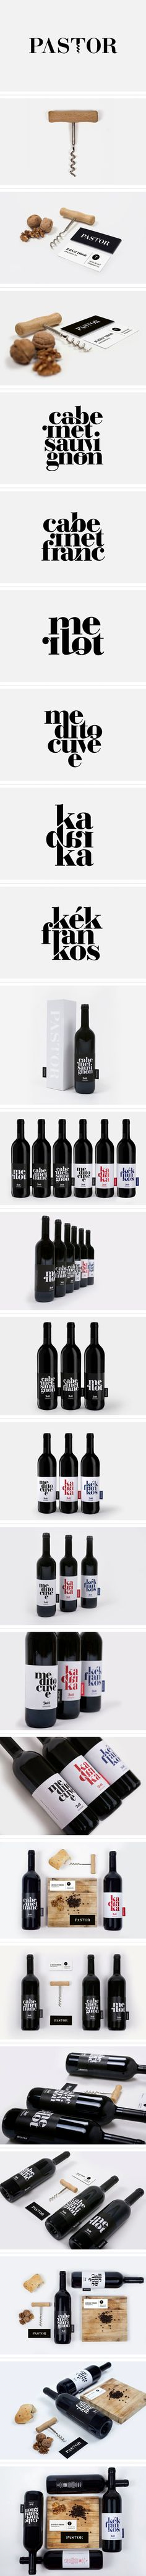 Pastor winery identity and branding